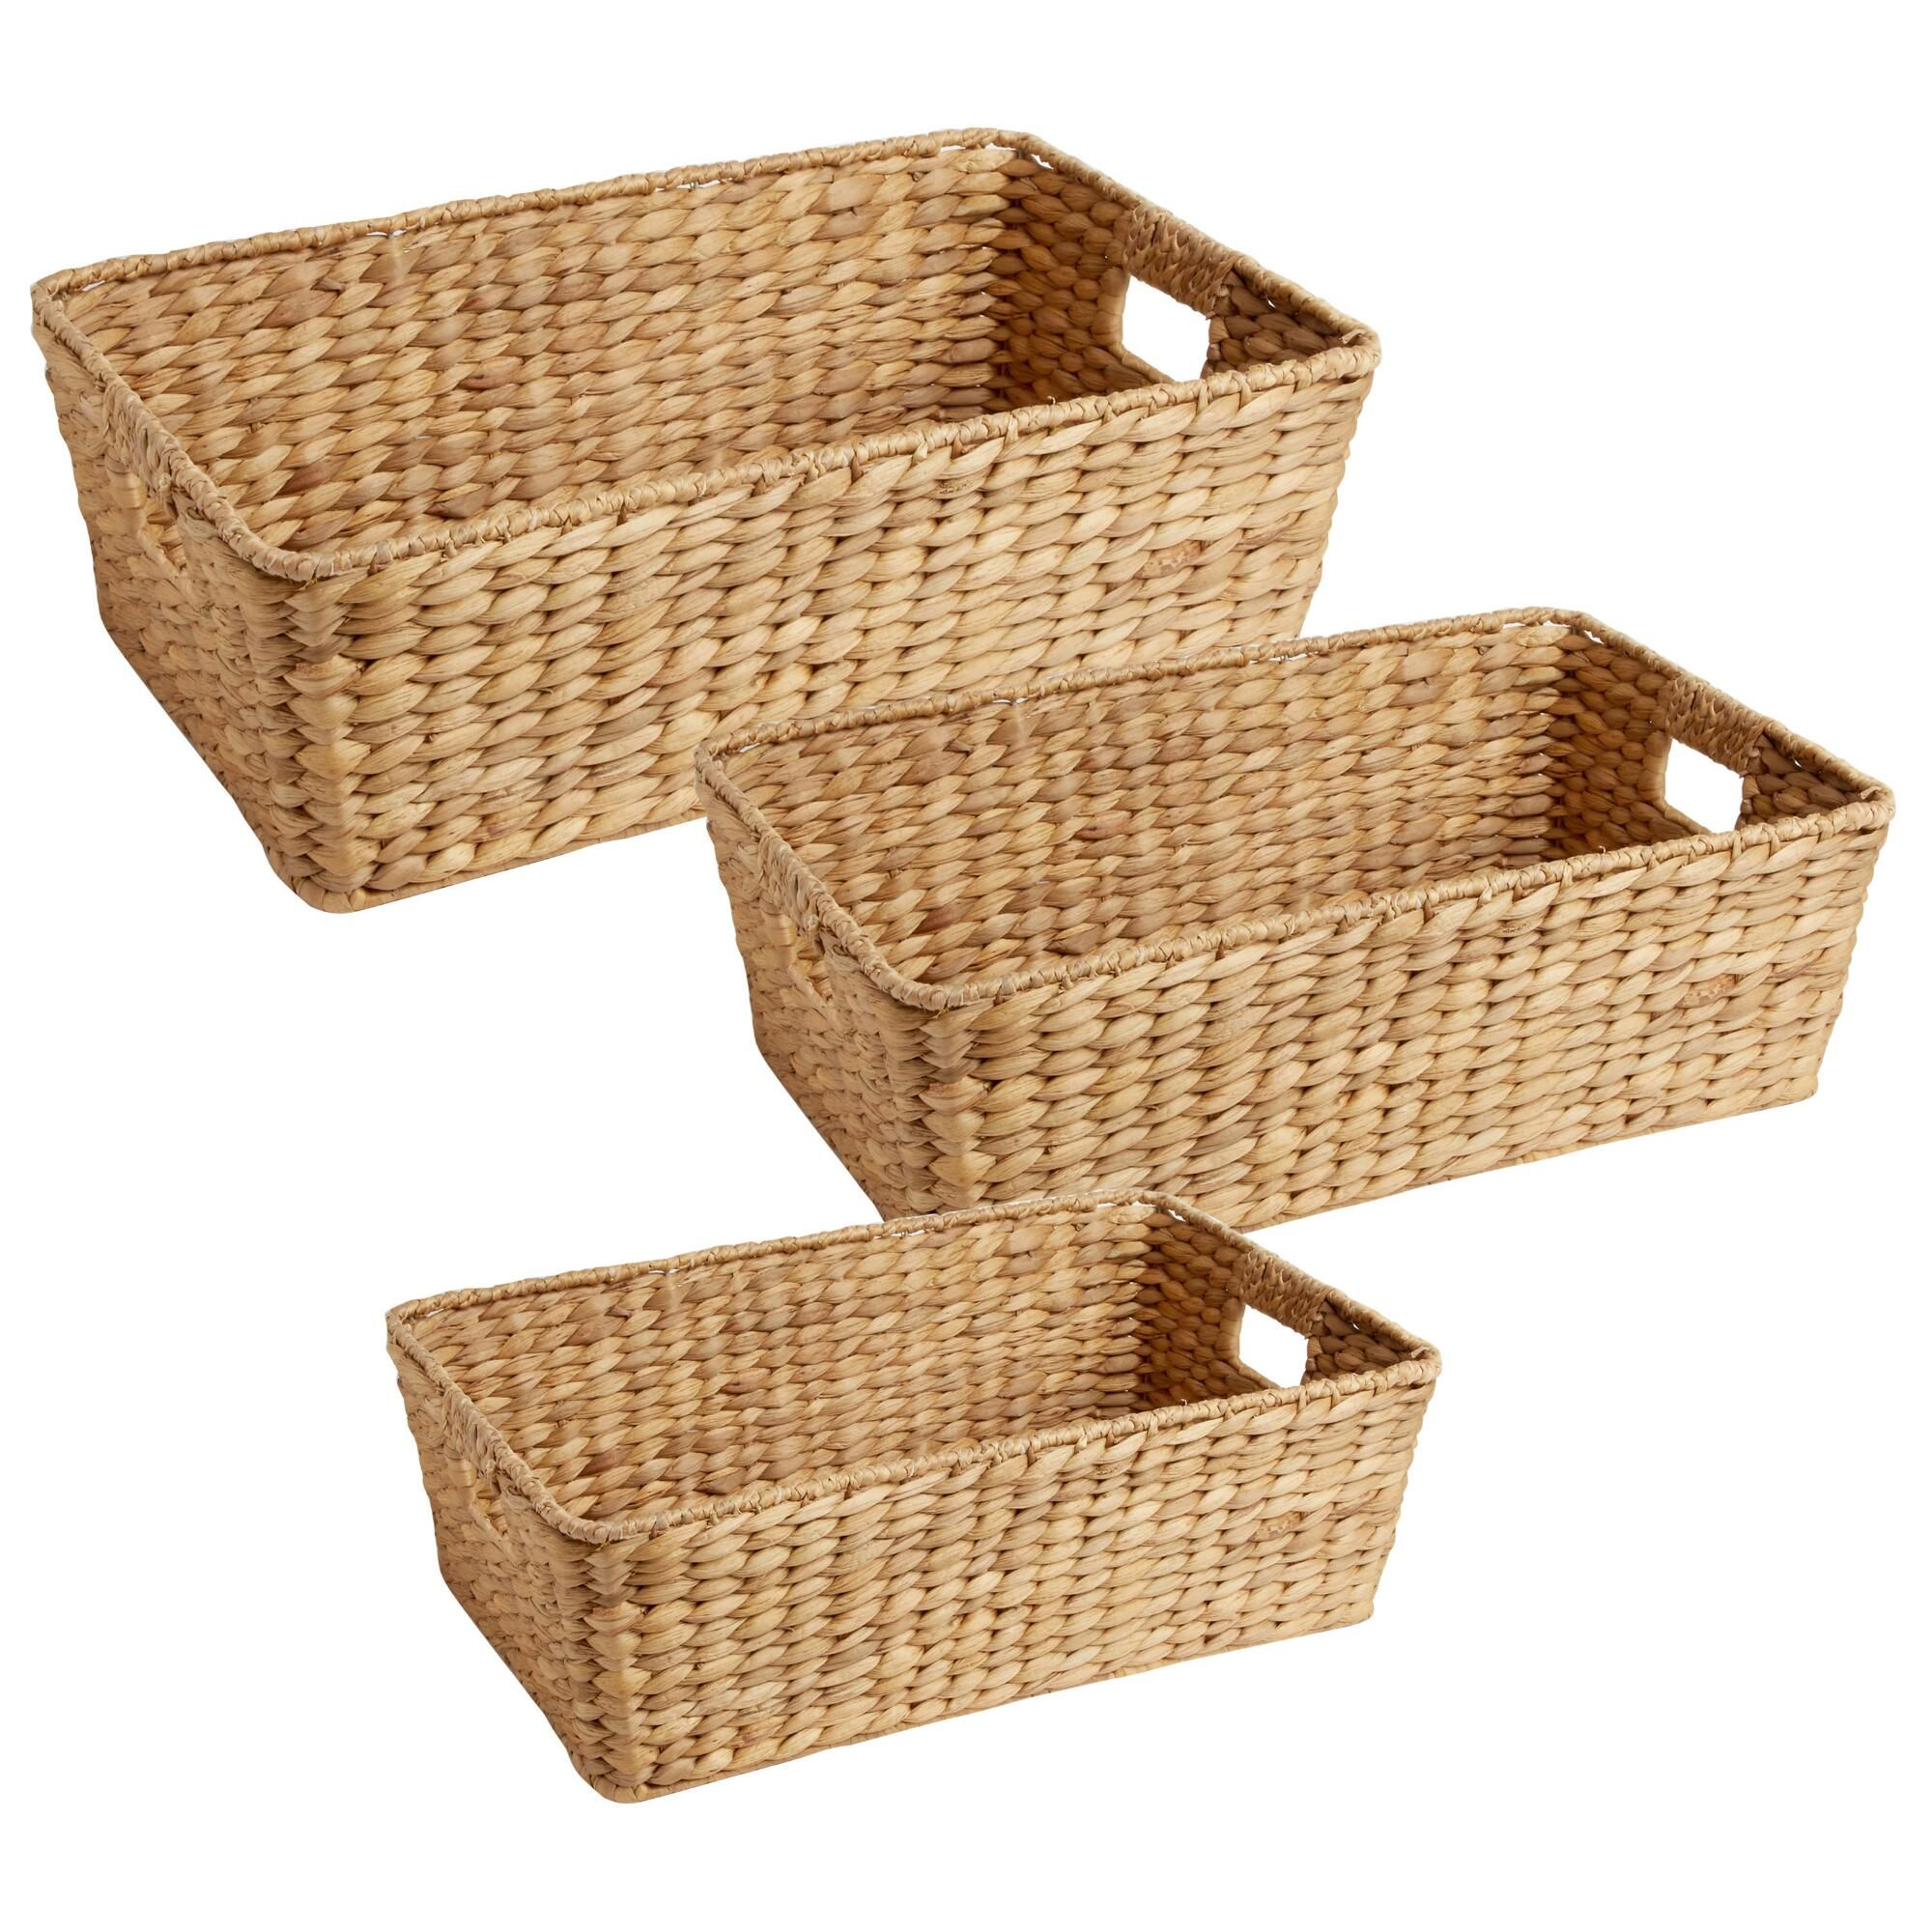 Home underbed storage baskets wicker underbed storage basket - Optimize Your Space With The Versatility Of Our Water Hyacinth Storage Basket Easily Sliding Under Under Bed Storagestorage Basketshamperextra